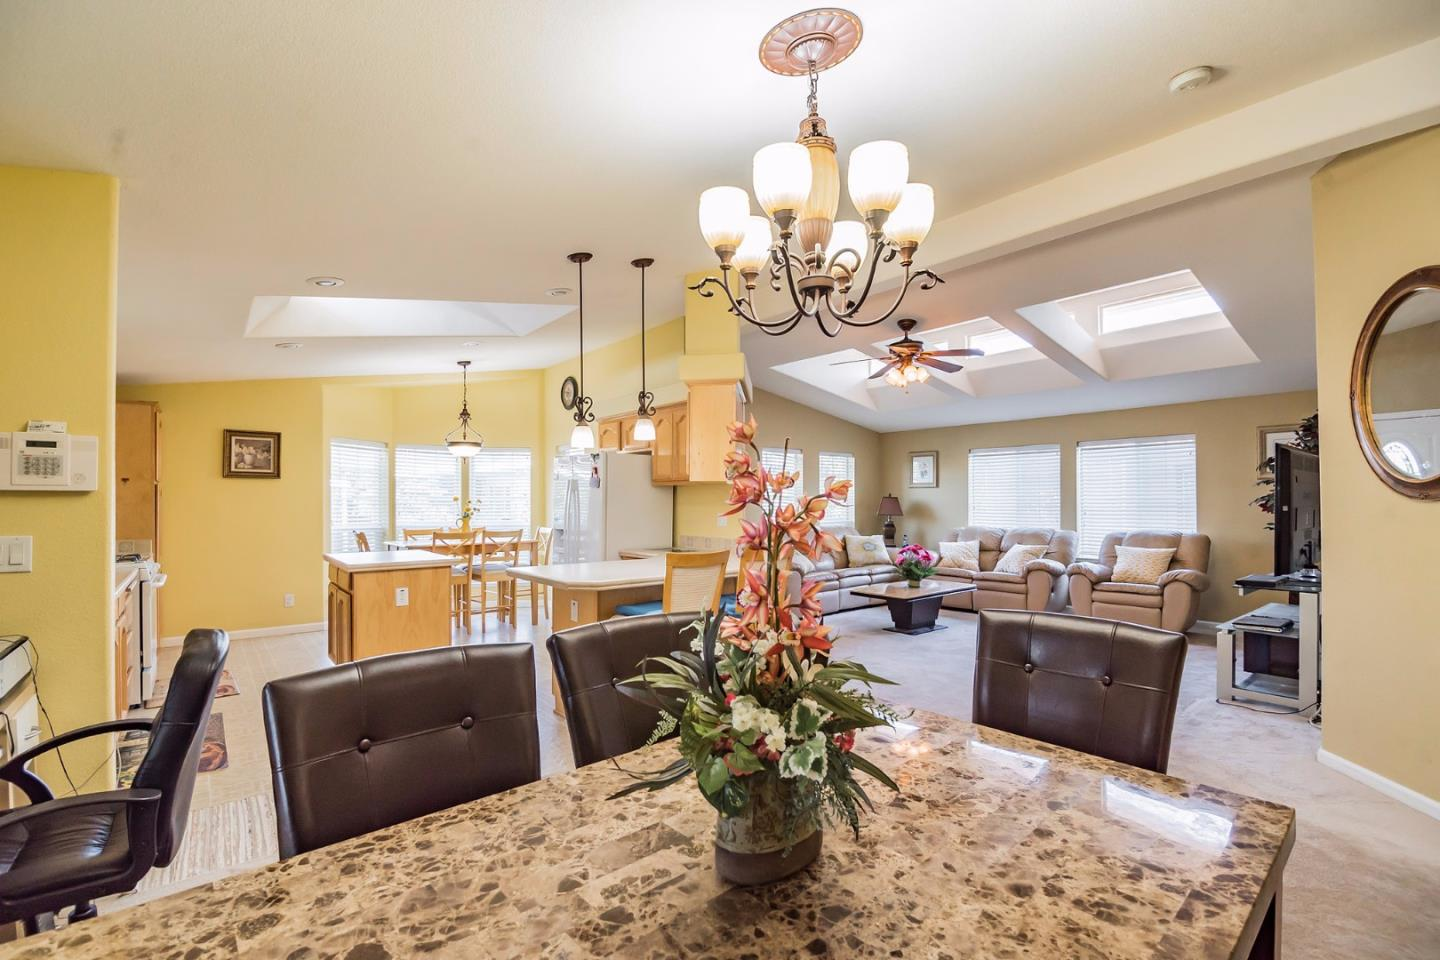 Additional photo for property listing at 2698 Whispering Hills Road  San Jose, California 95148 United States